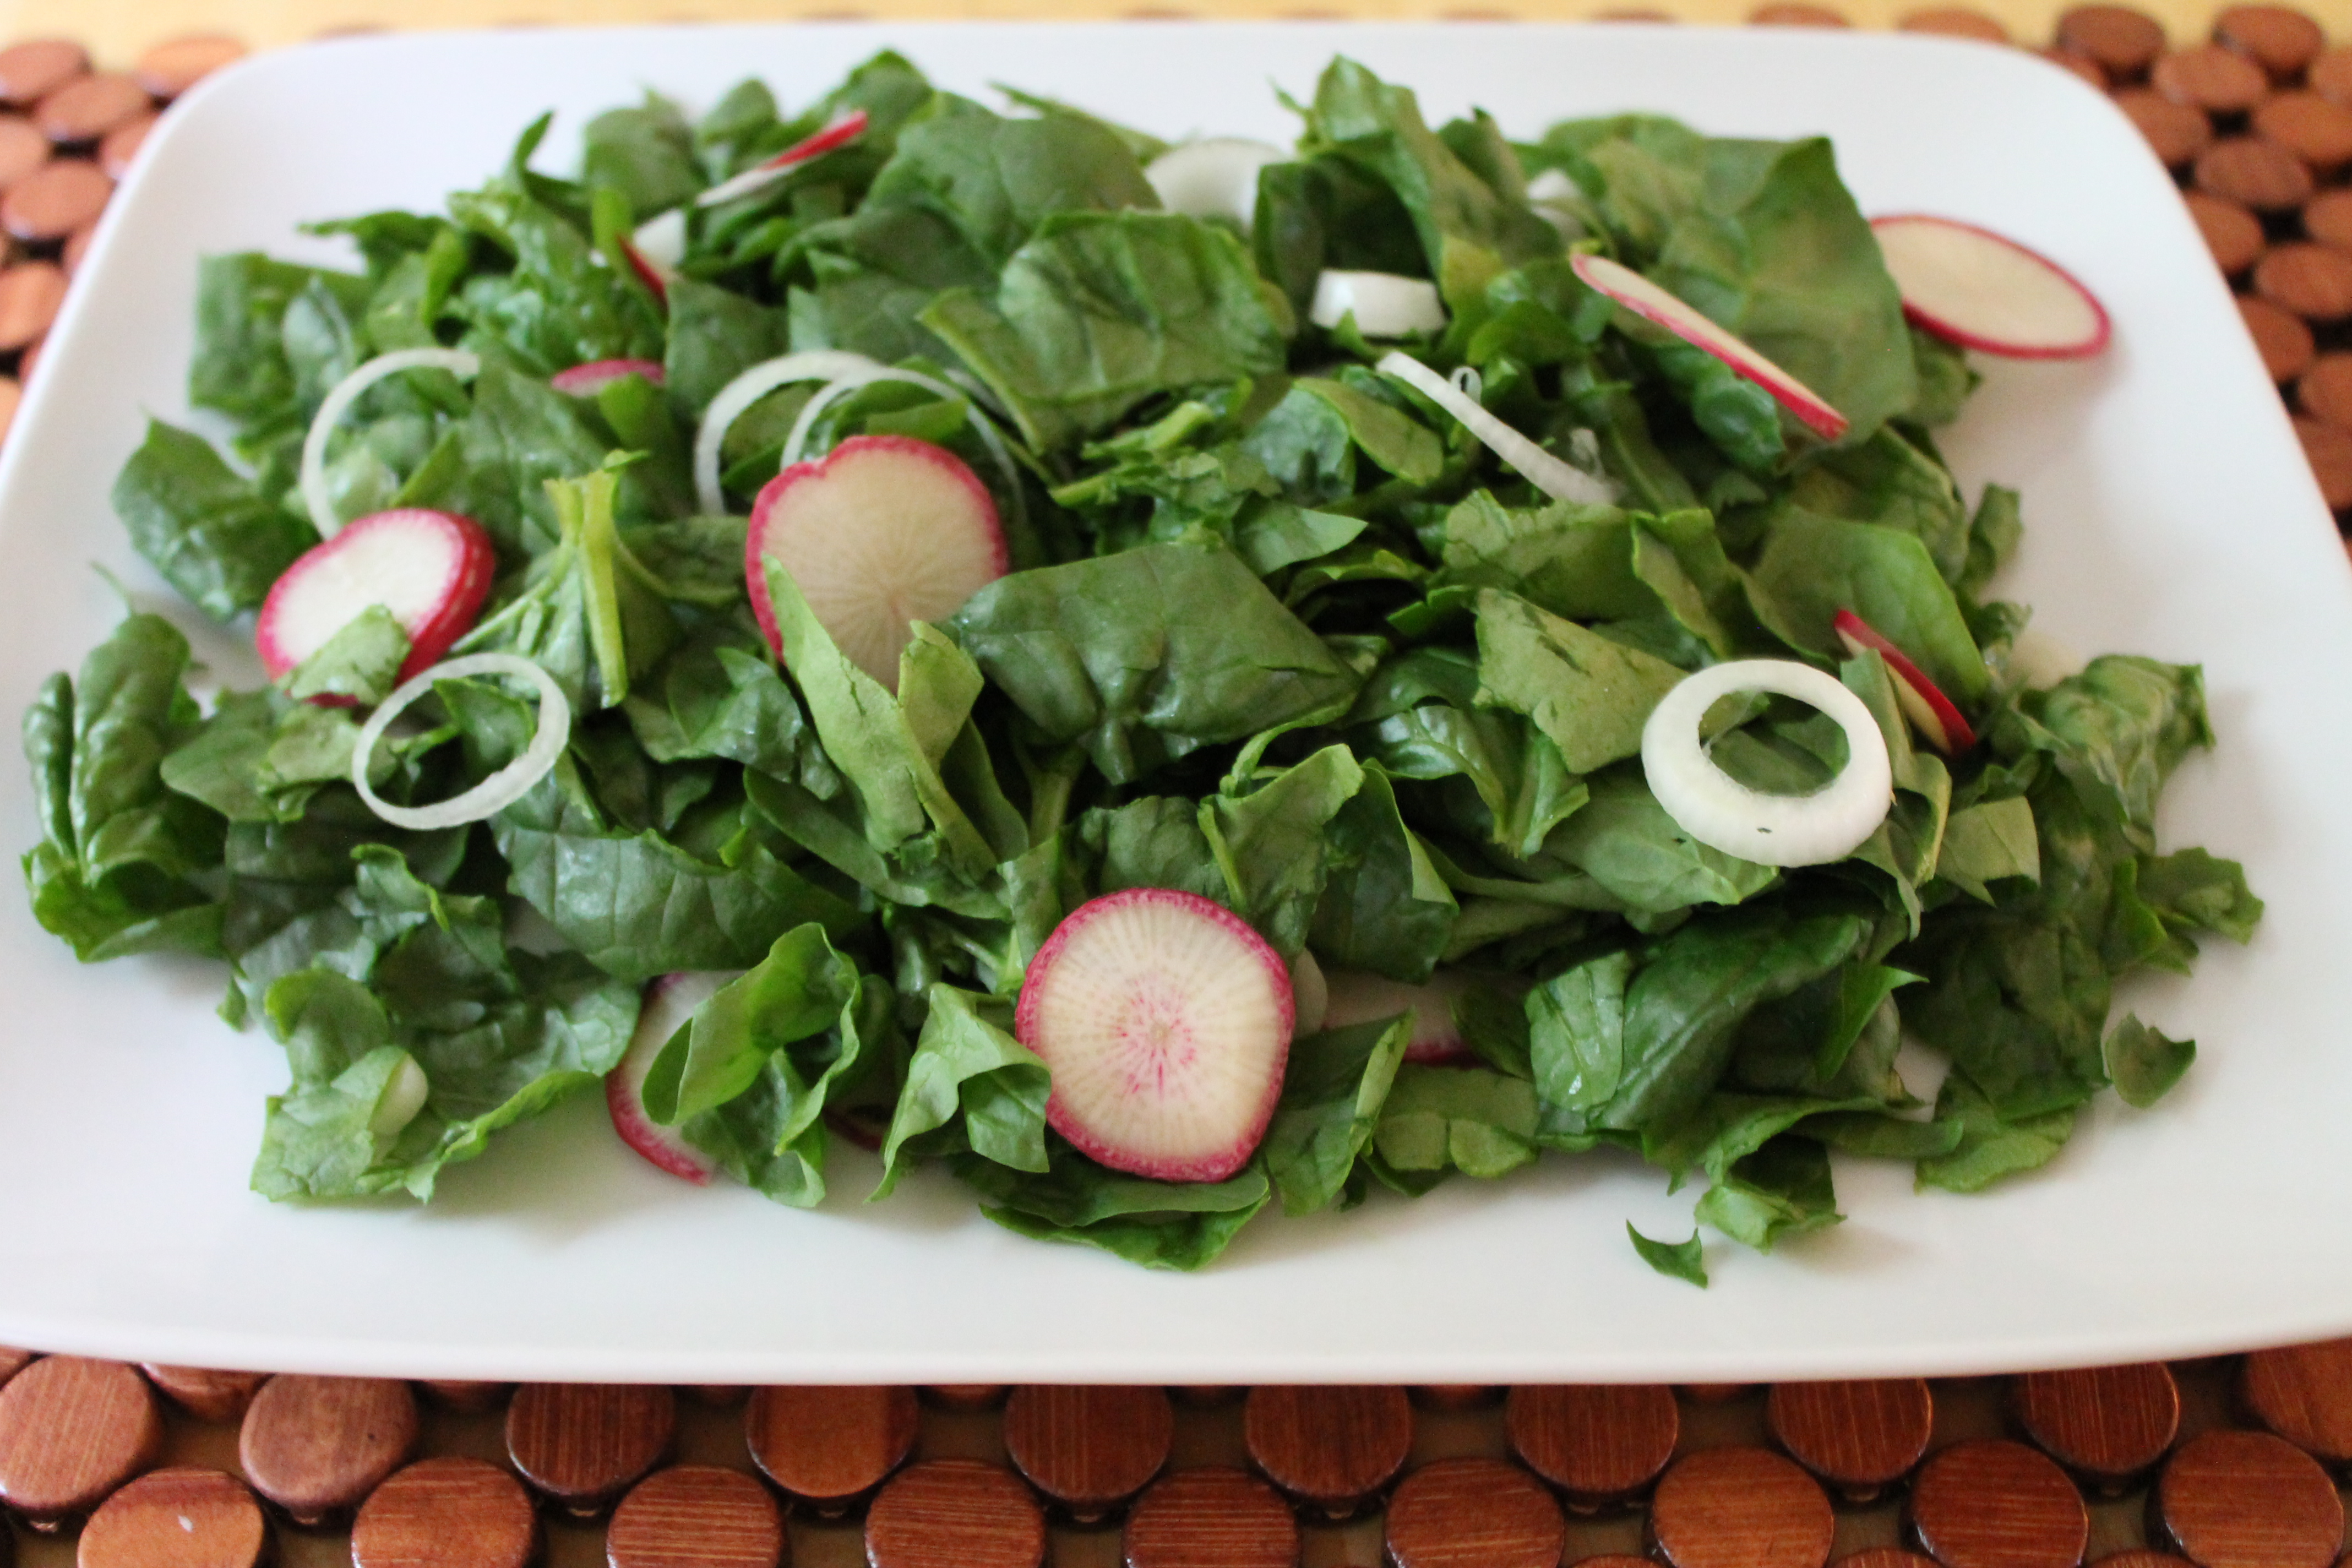 Spinach, Radishes, Spring Onions